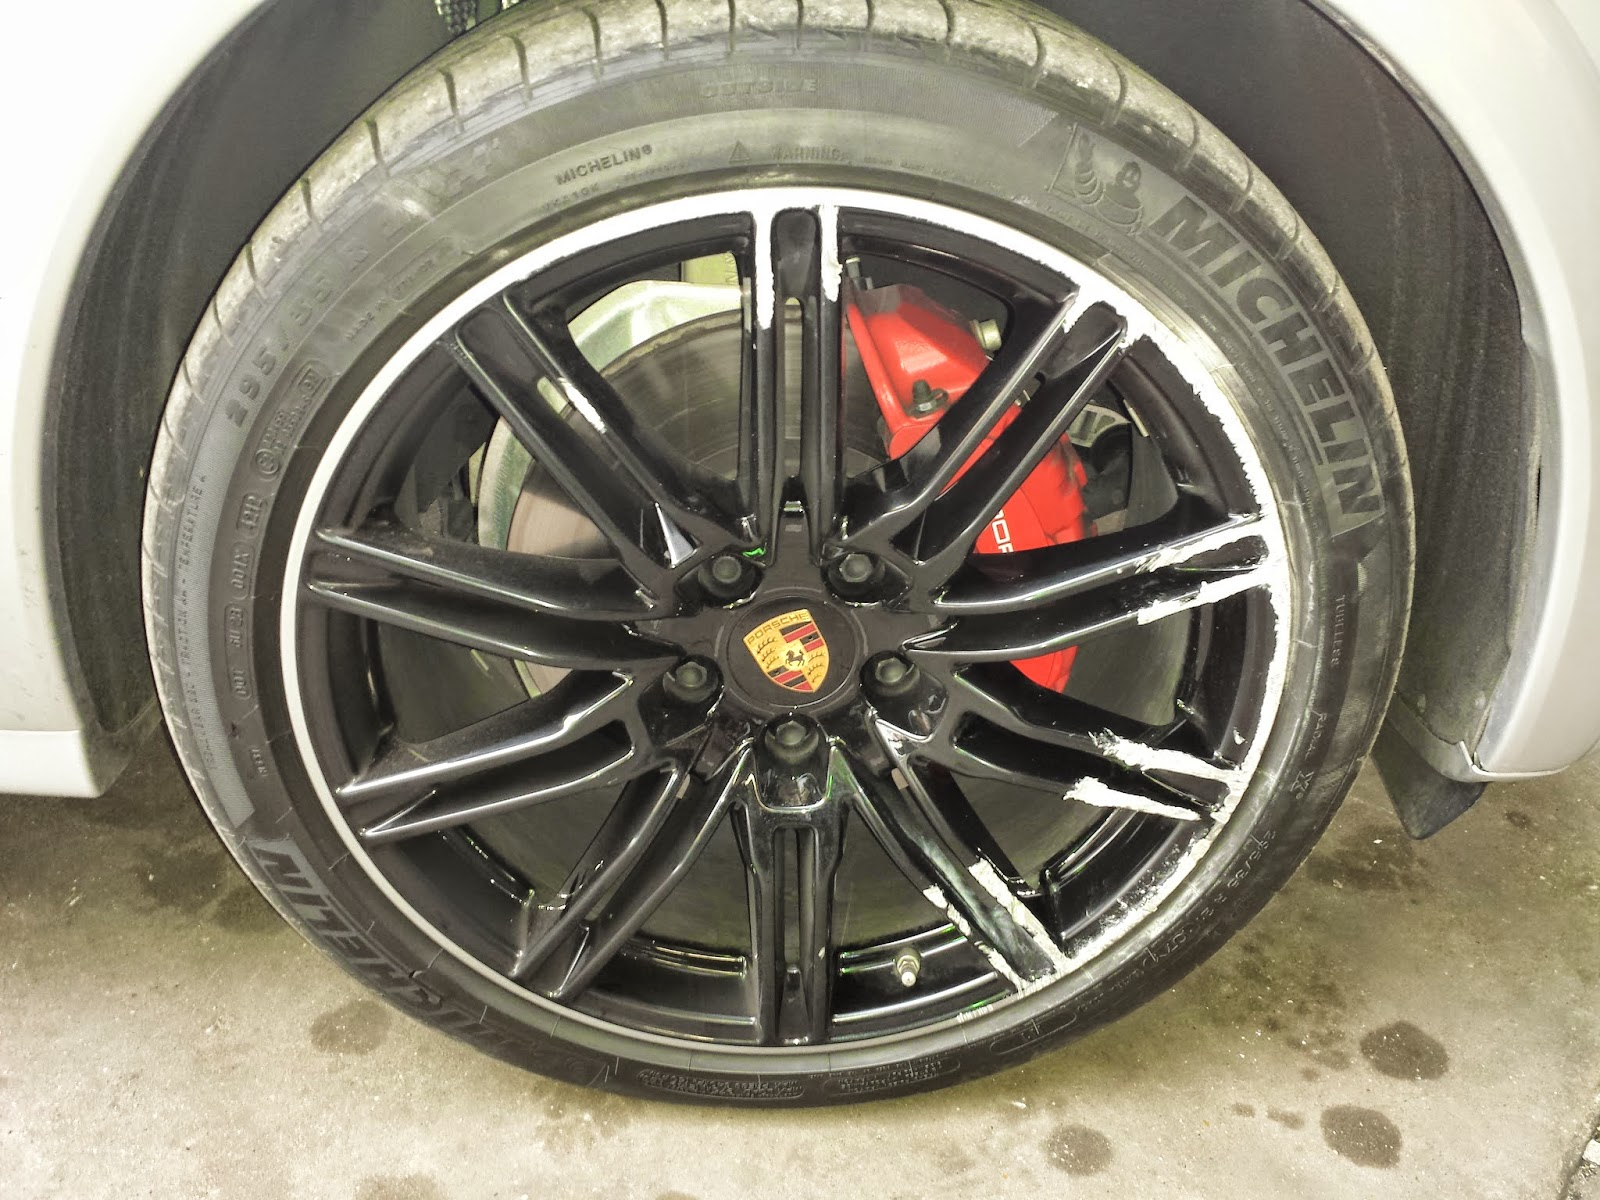 Rim Repair Houston Porsche Wheel Painting Curb Rash Repair Houston